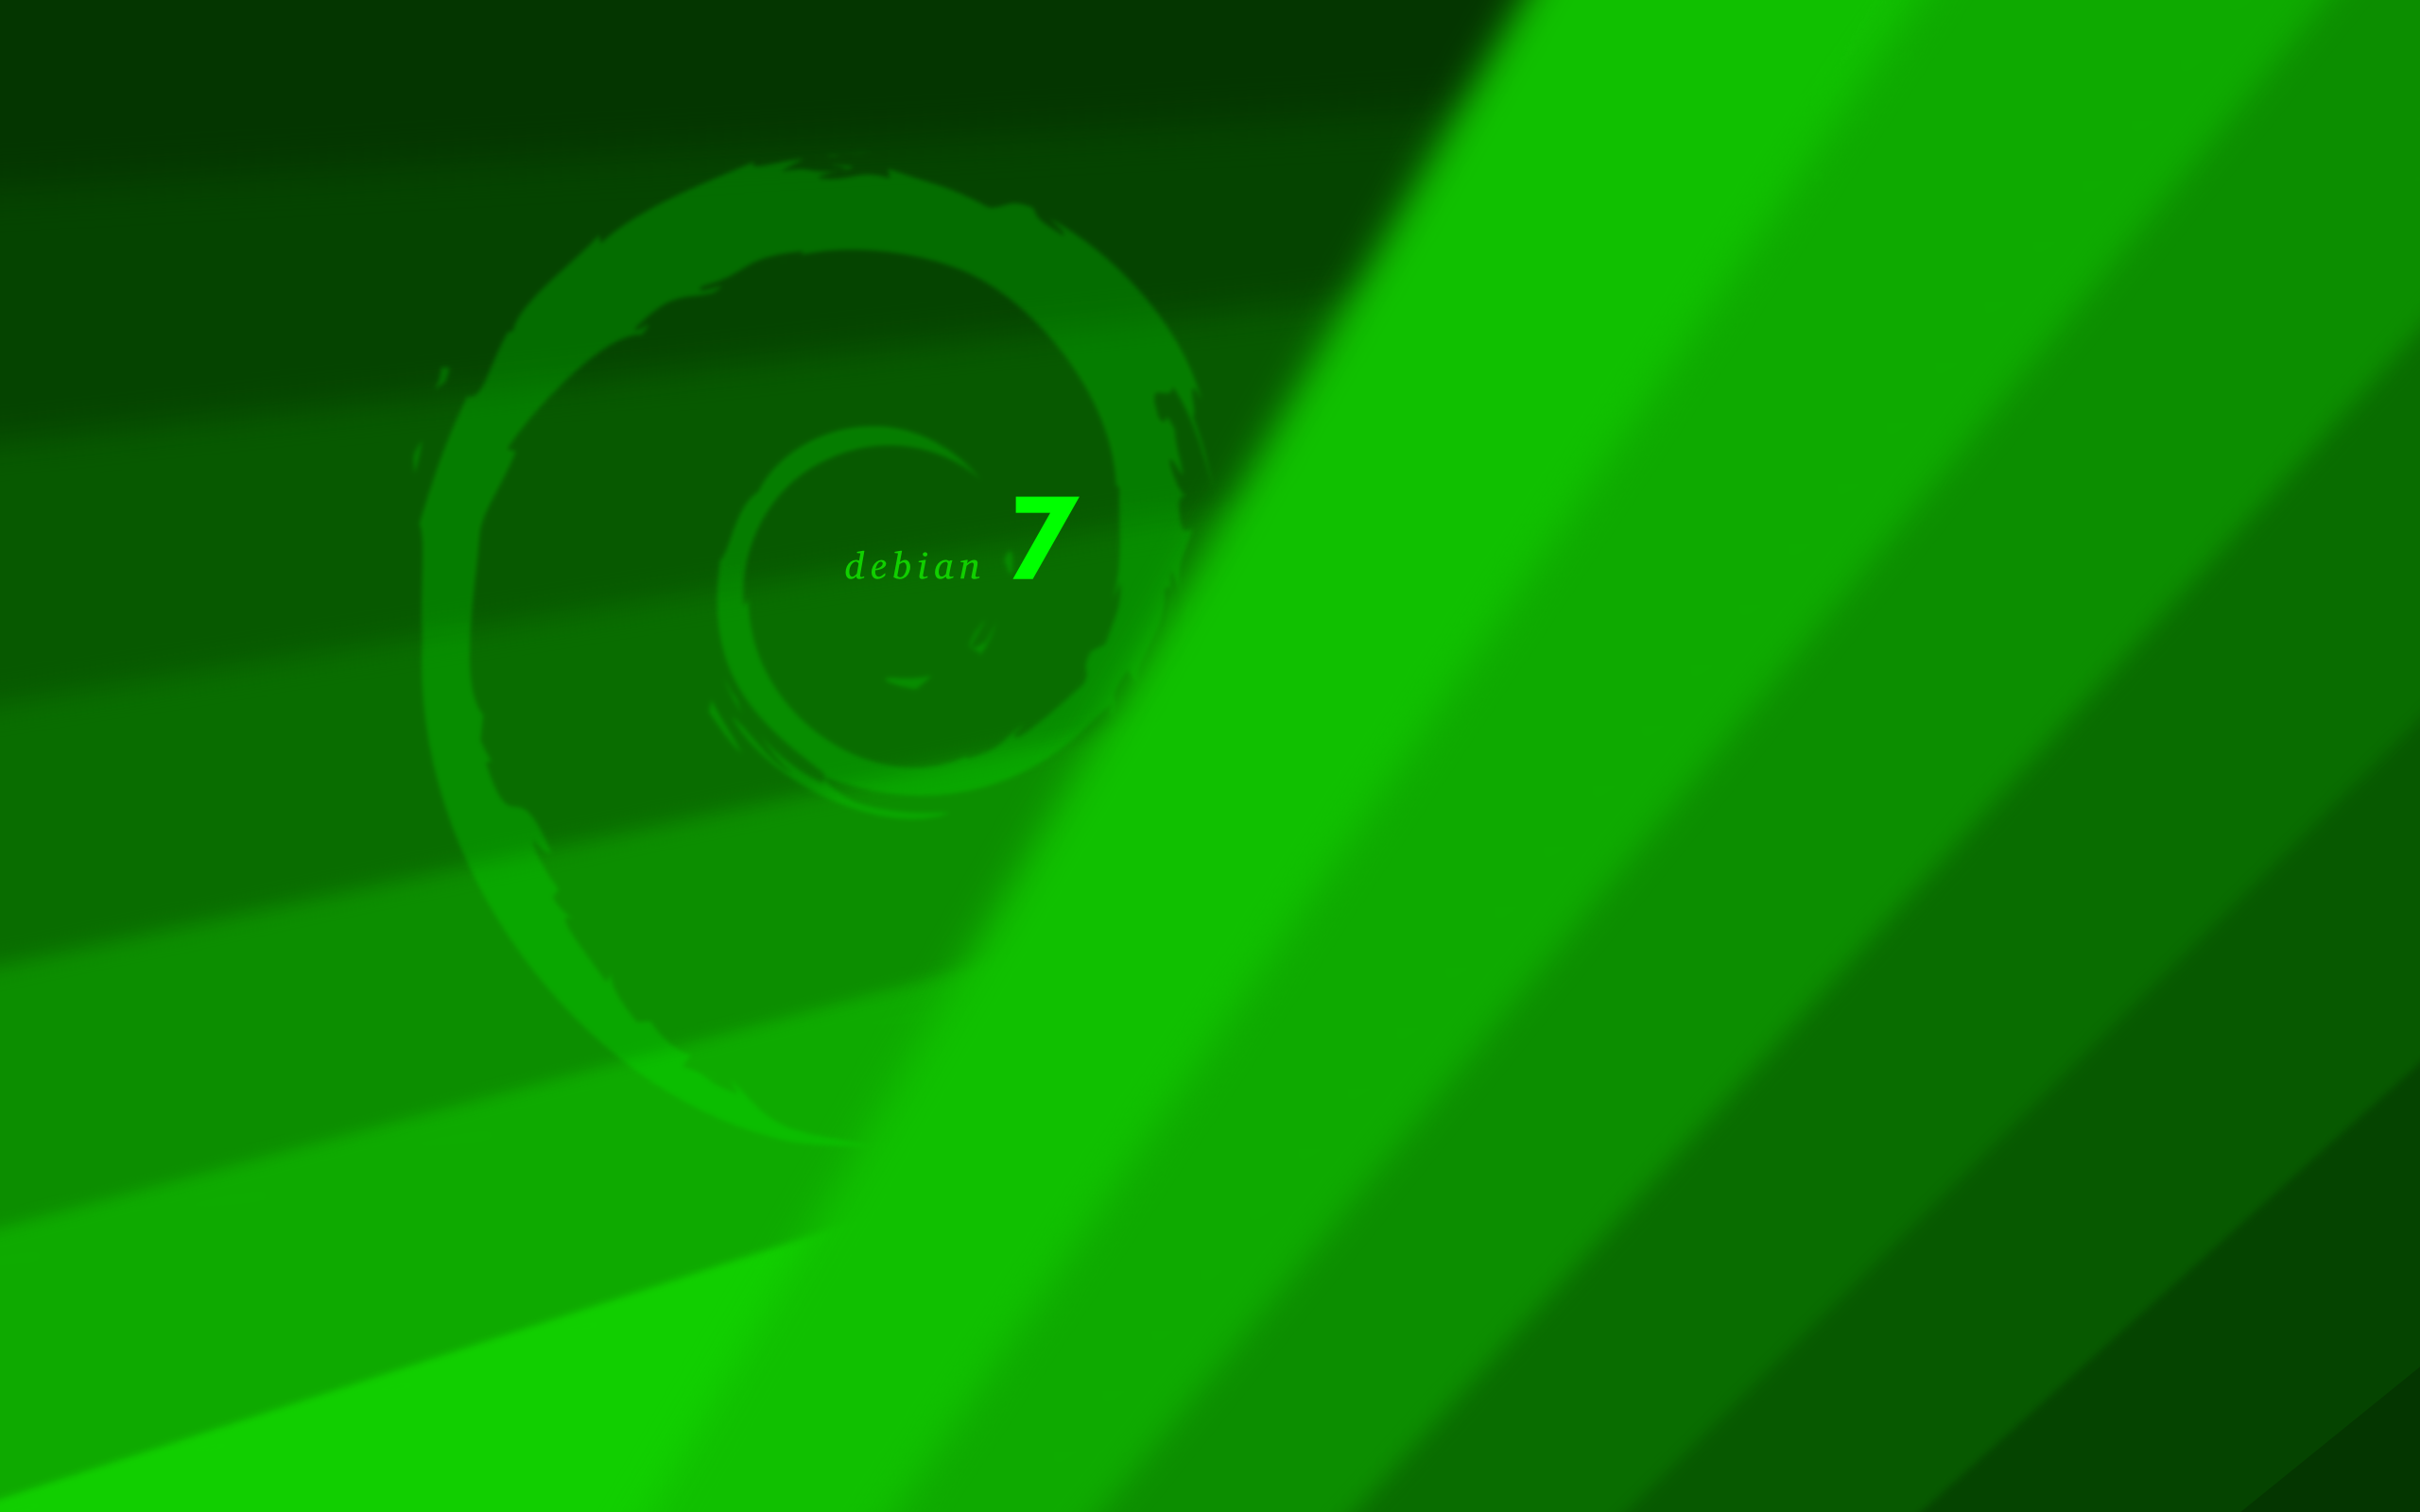 green7-2560x1600.png